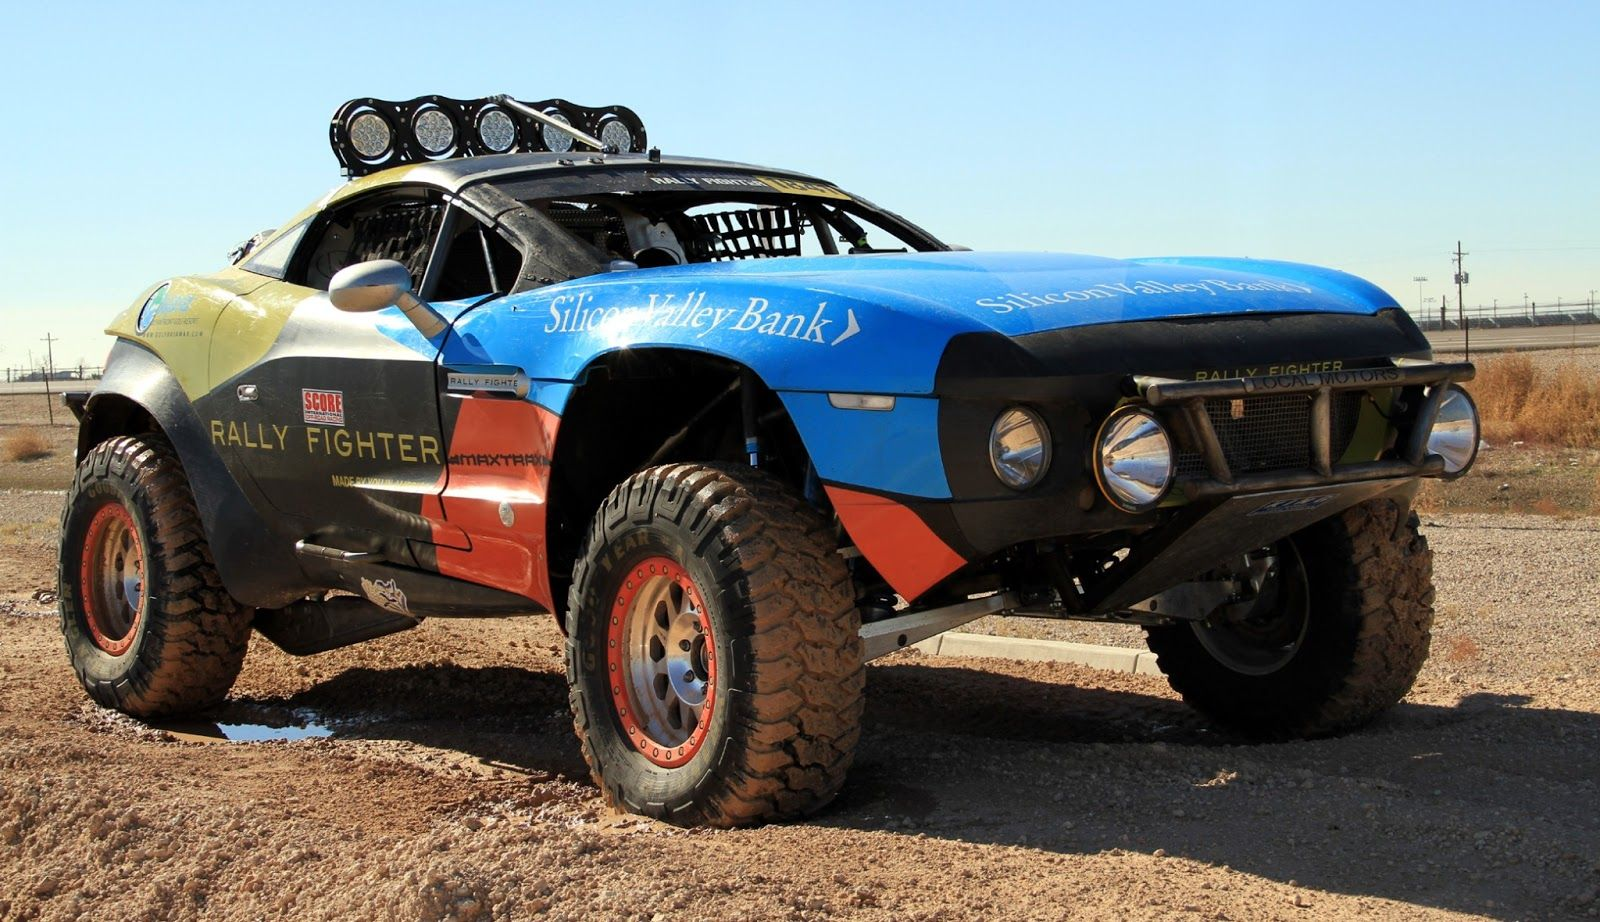 95 car toys  Local Motors Rally Fighter  LocalMotors RallyFighter  Pinterest